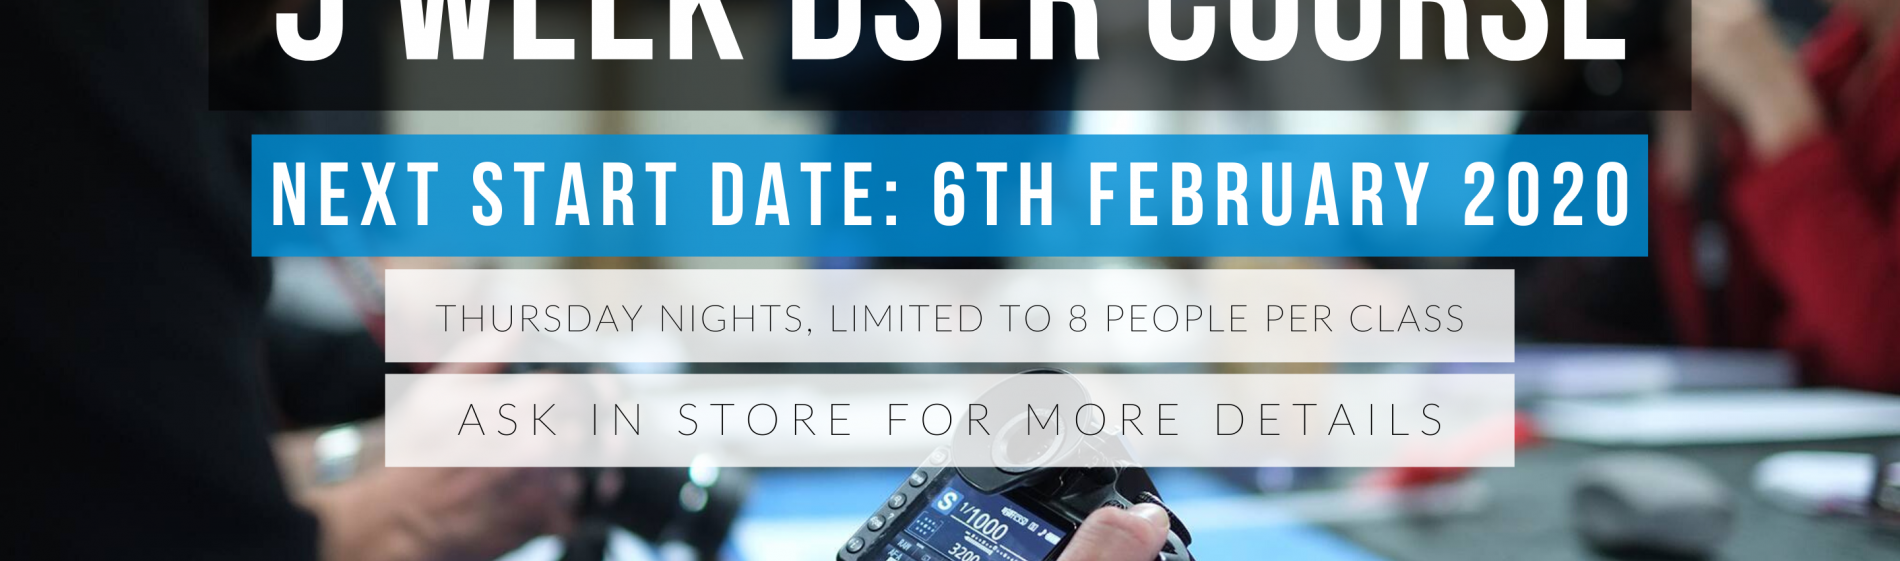 6th February 2020 DSLR COURSE